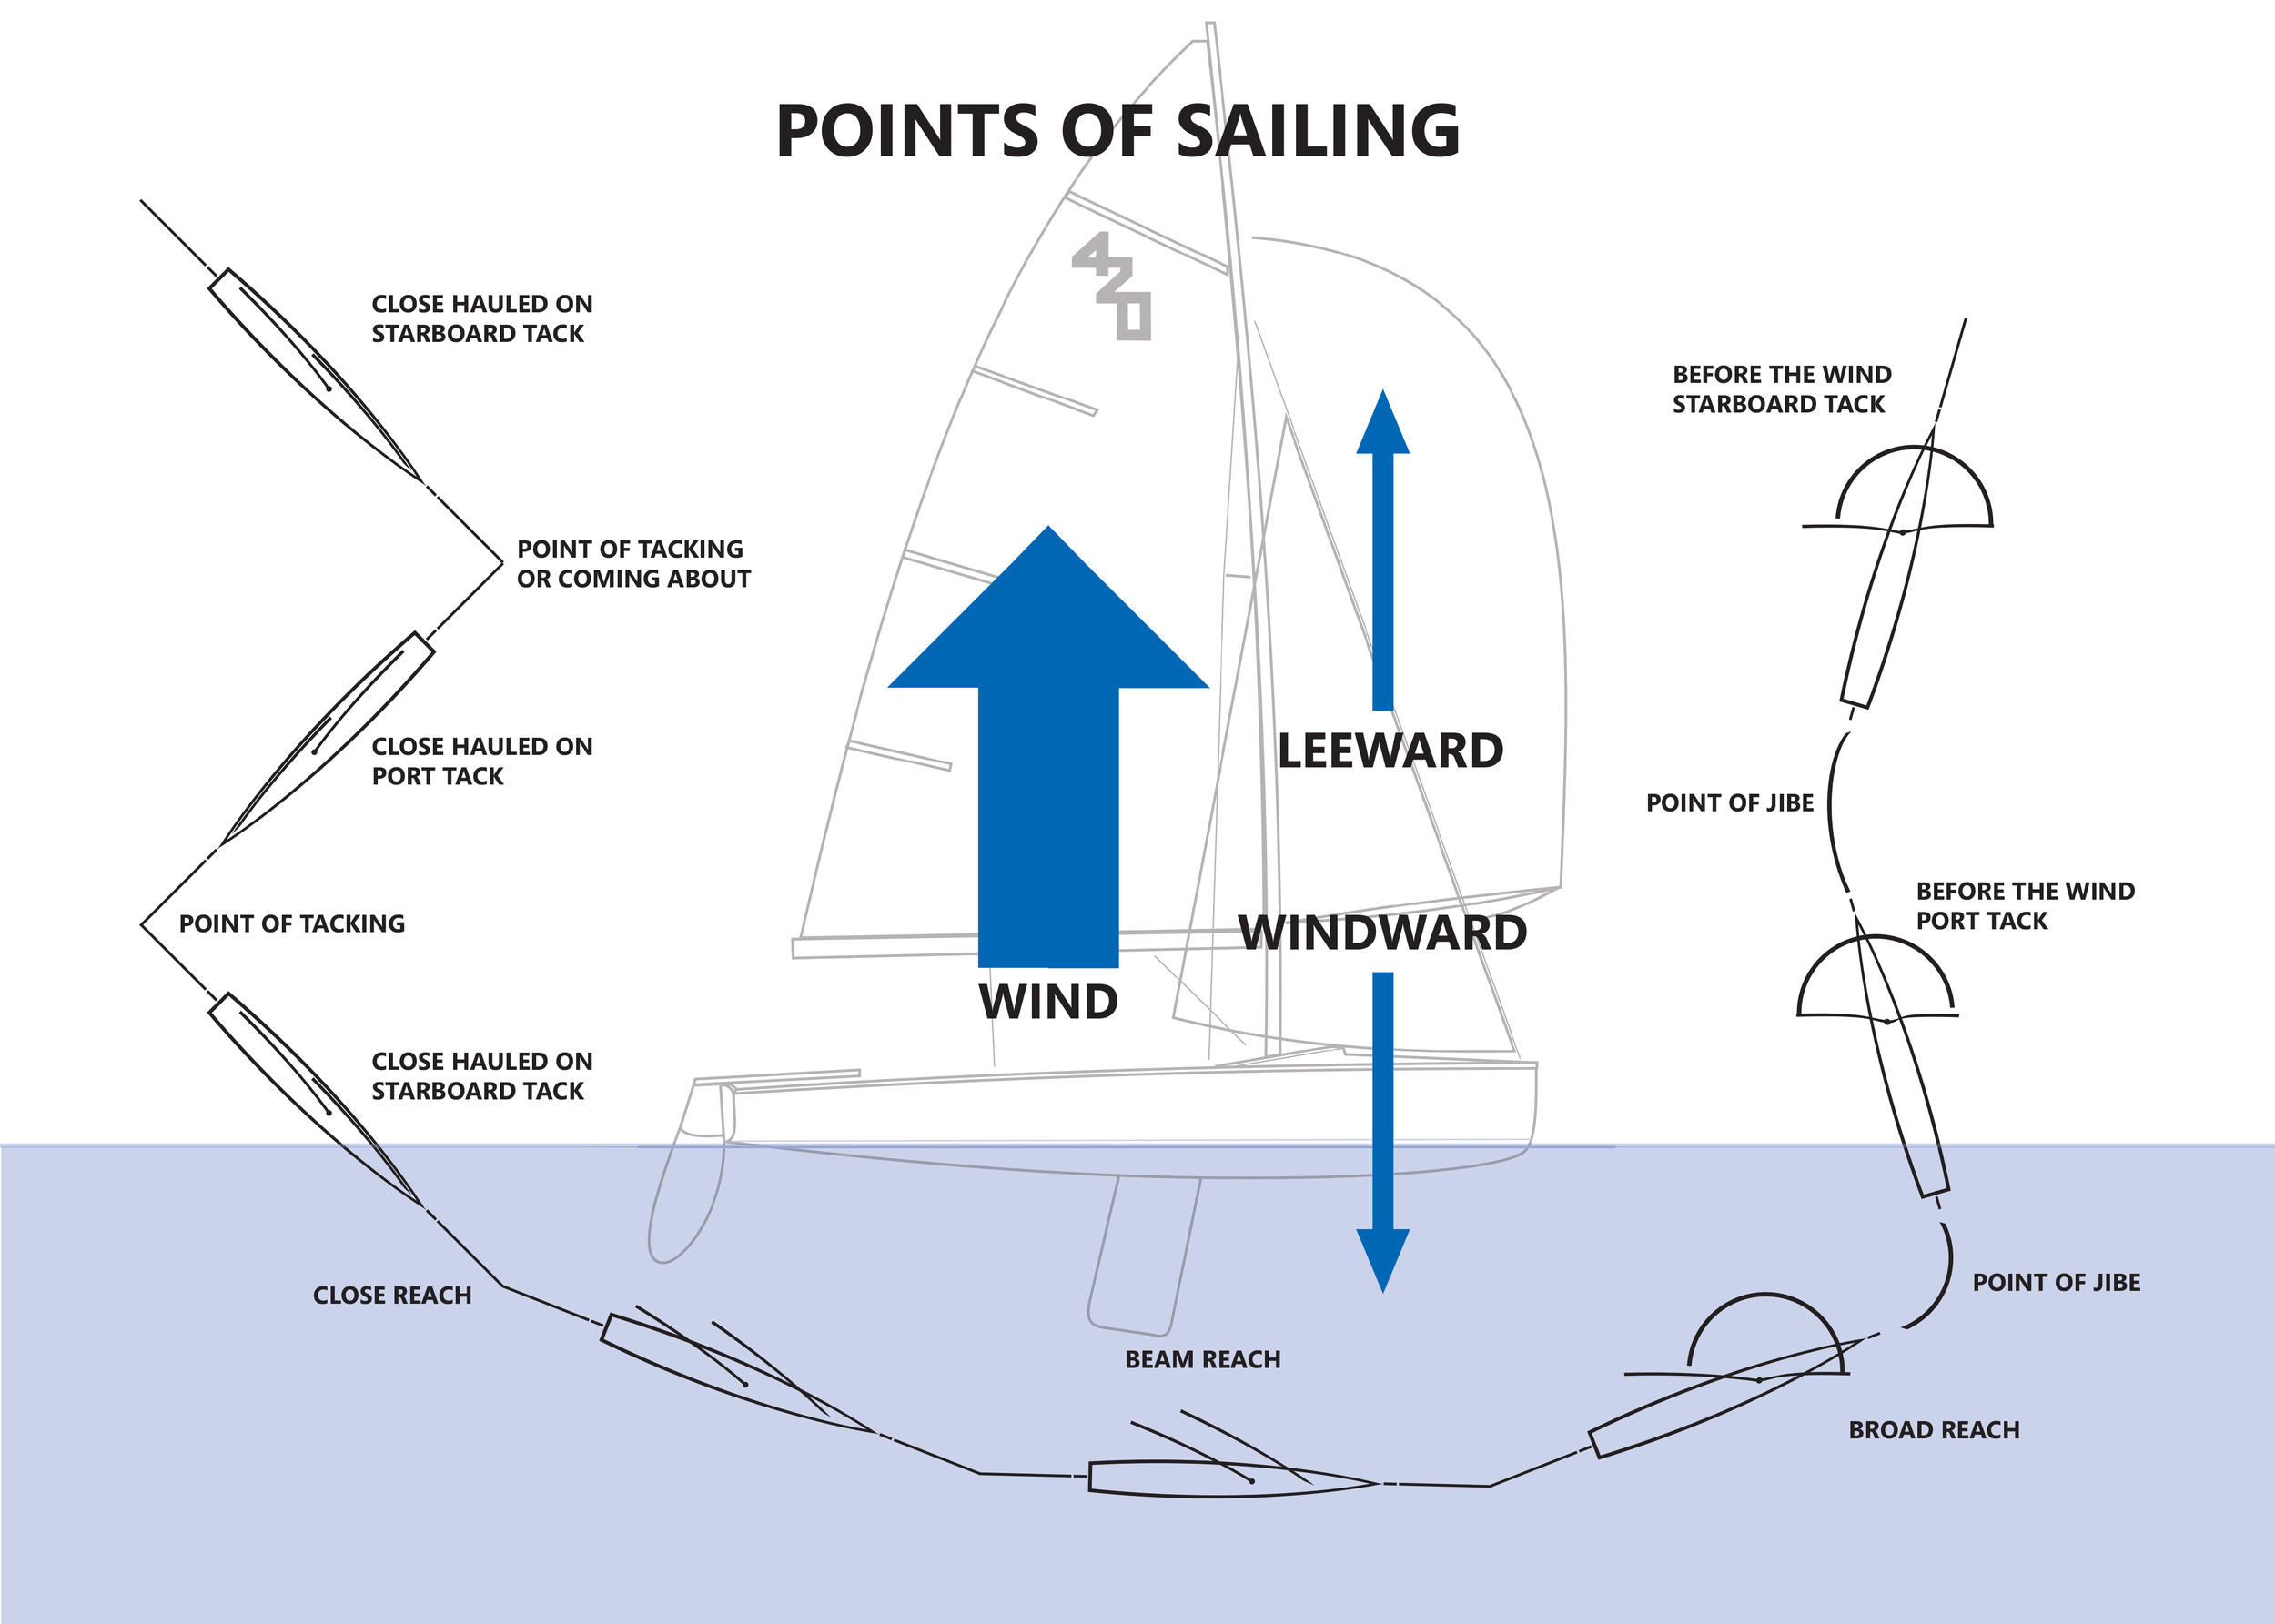 Points_Of_Sailing.jpg